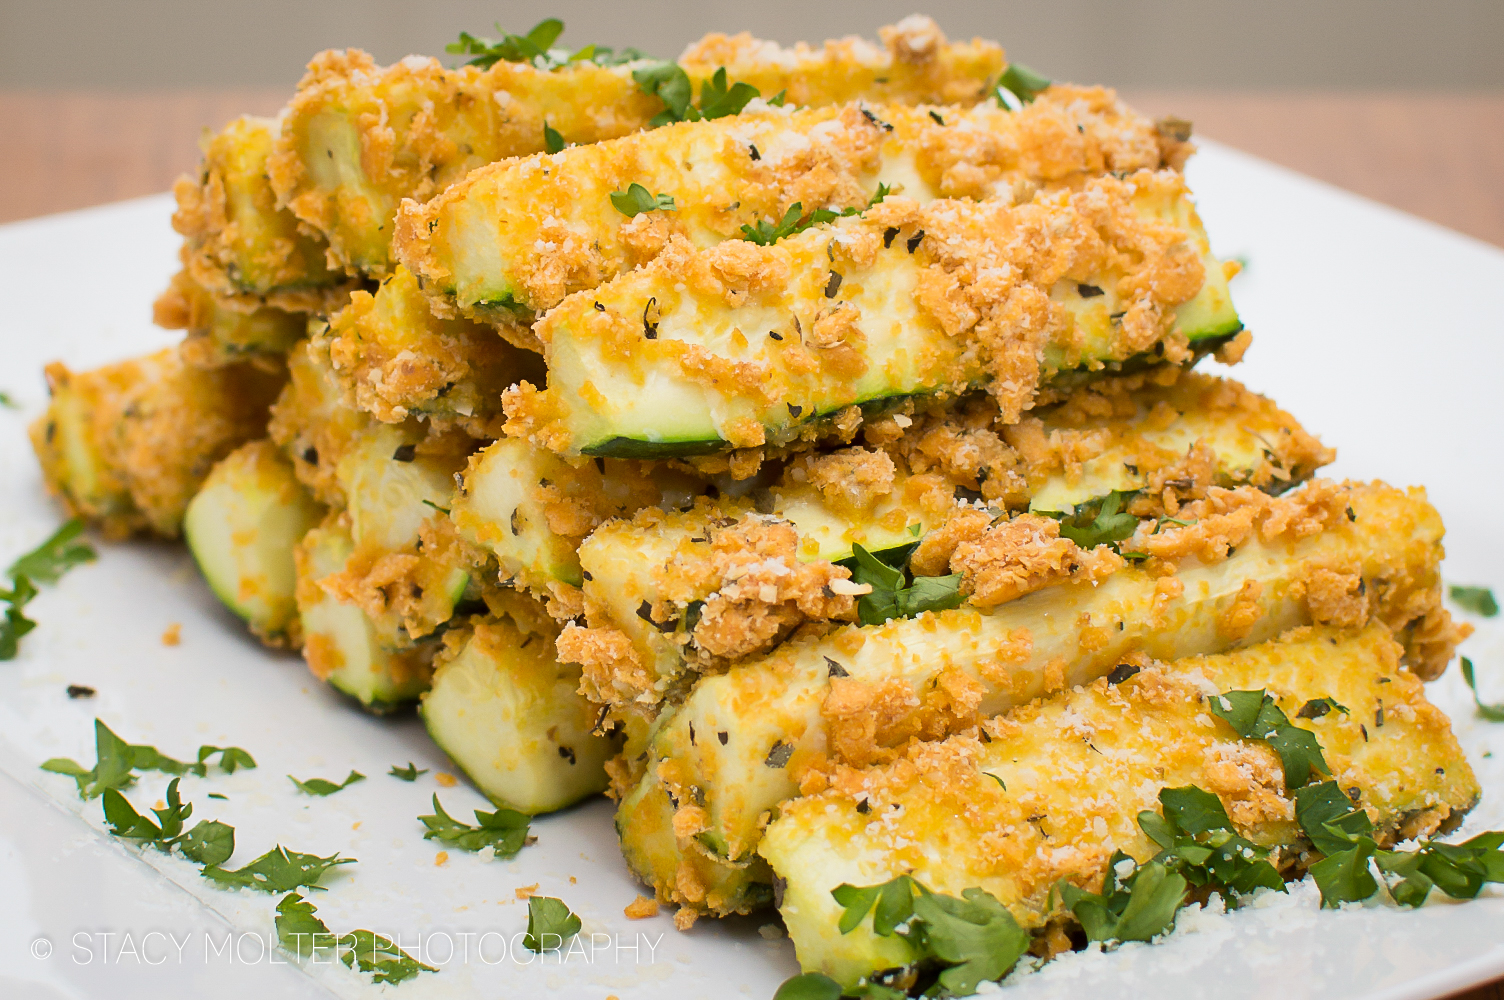 Baked Cheddar and Parmesan Zucchini Sticks • Fancy Shanty